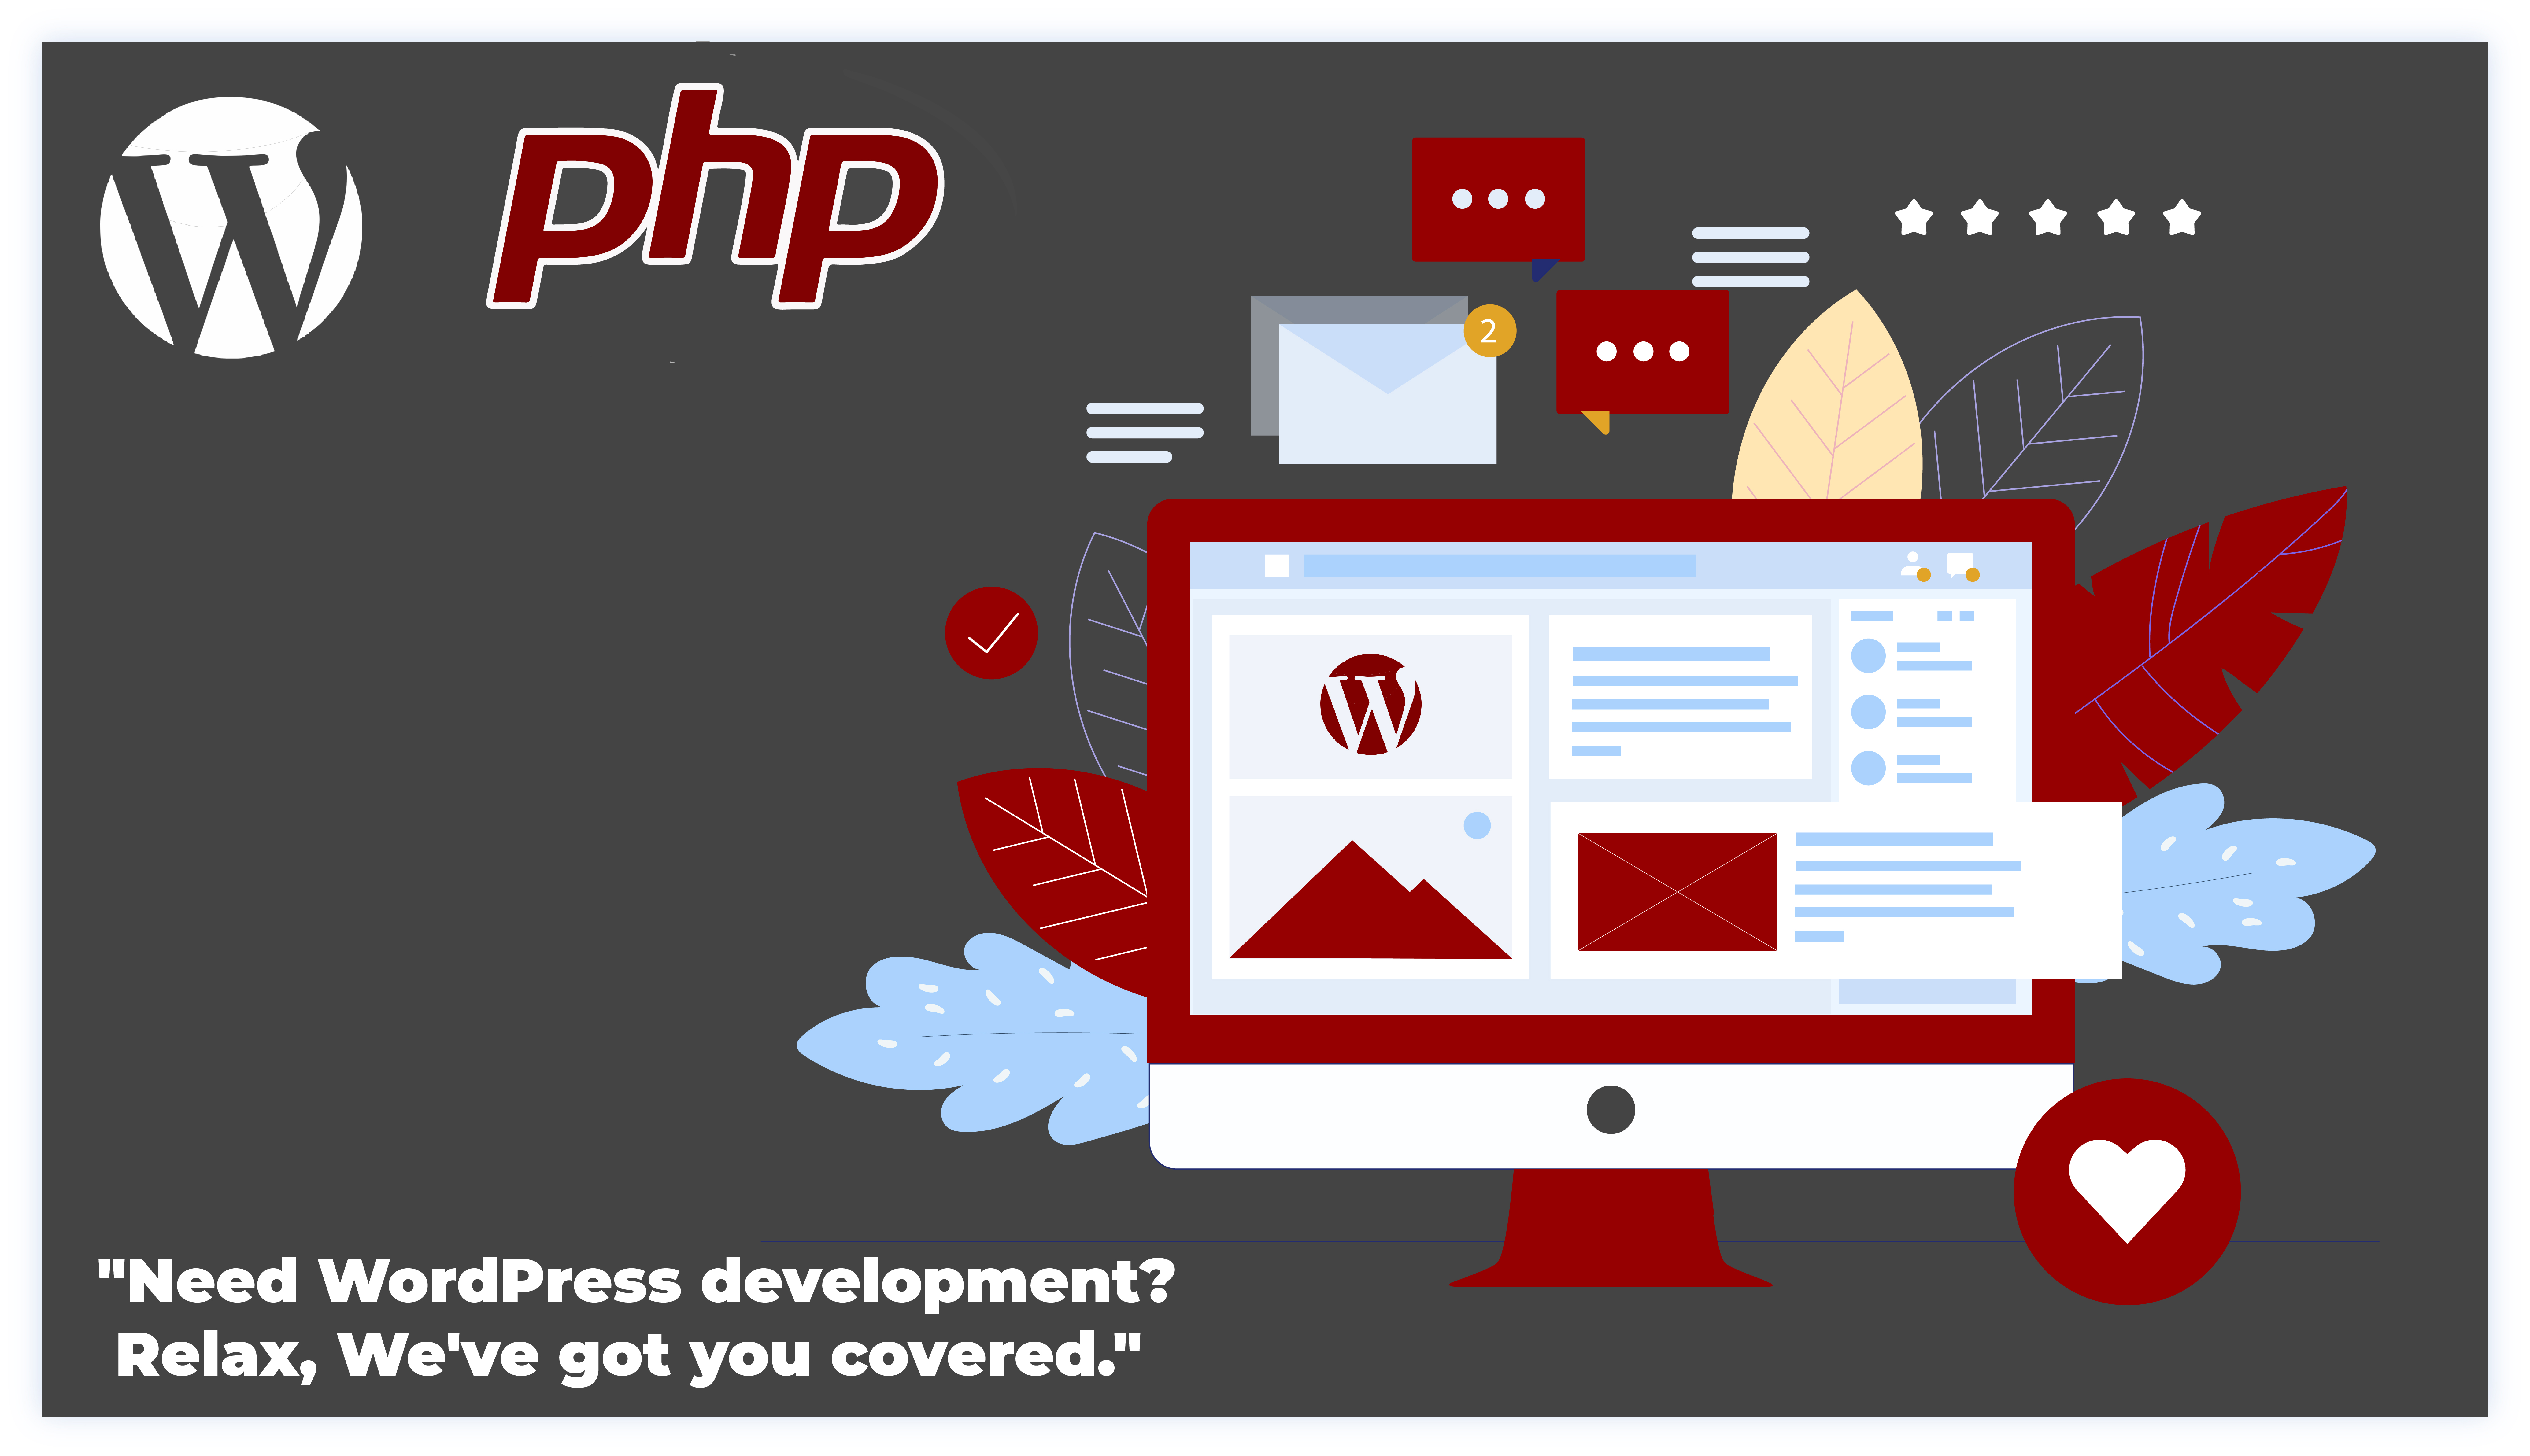 Relax, 'corePHP' handles WordPress Development – People relaxed with a good WordPress website